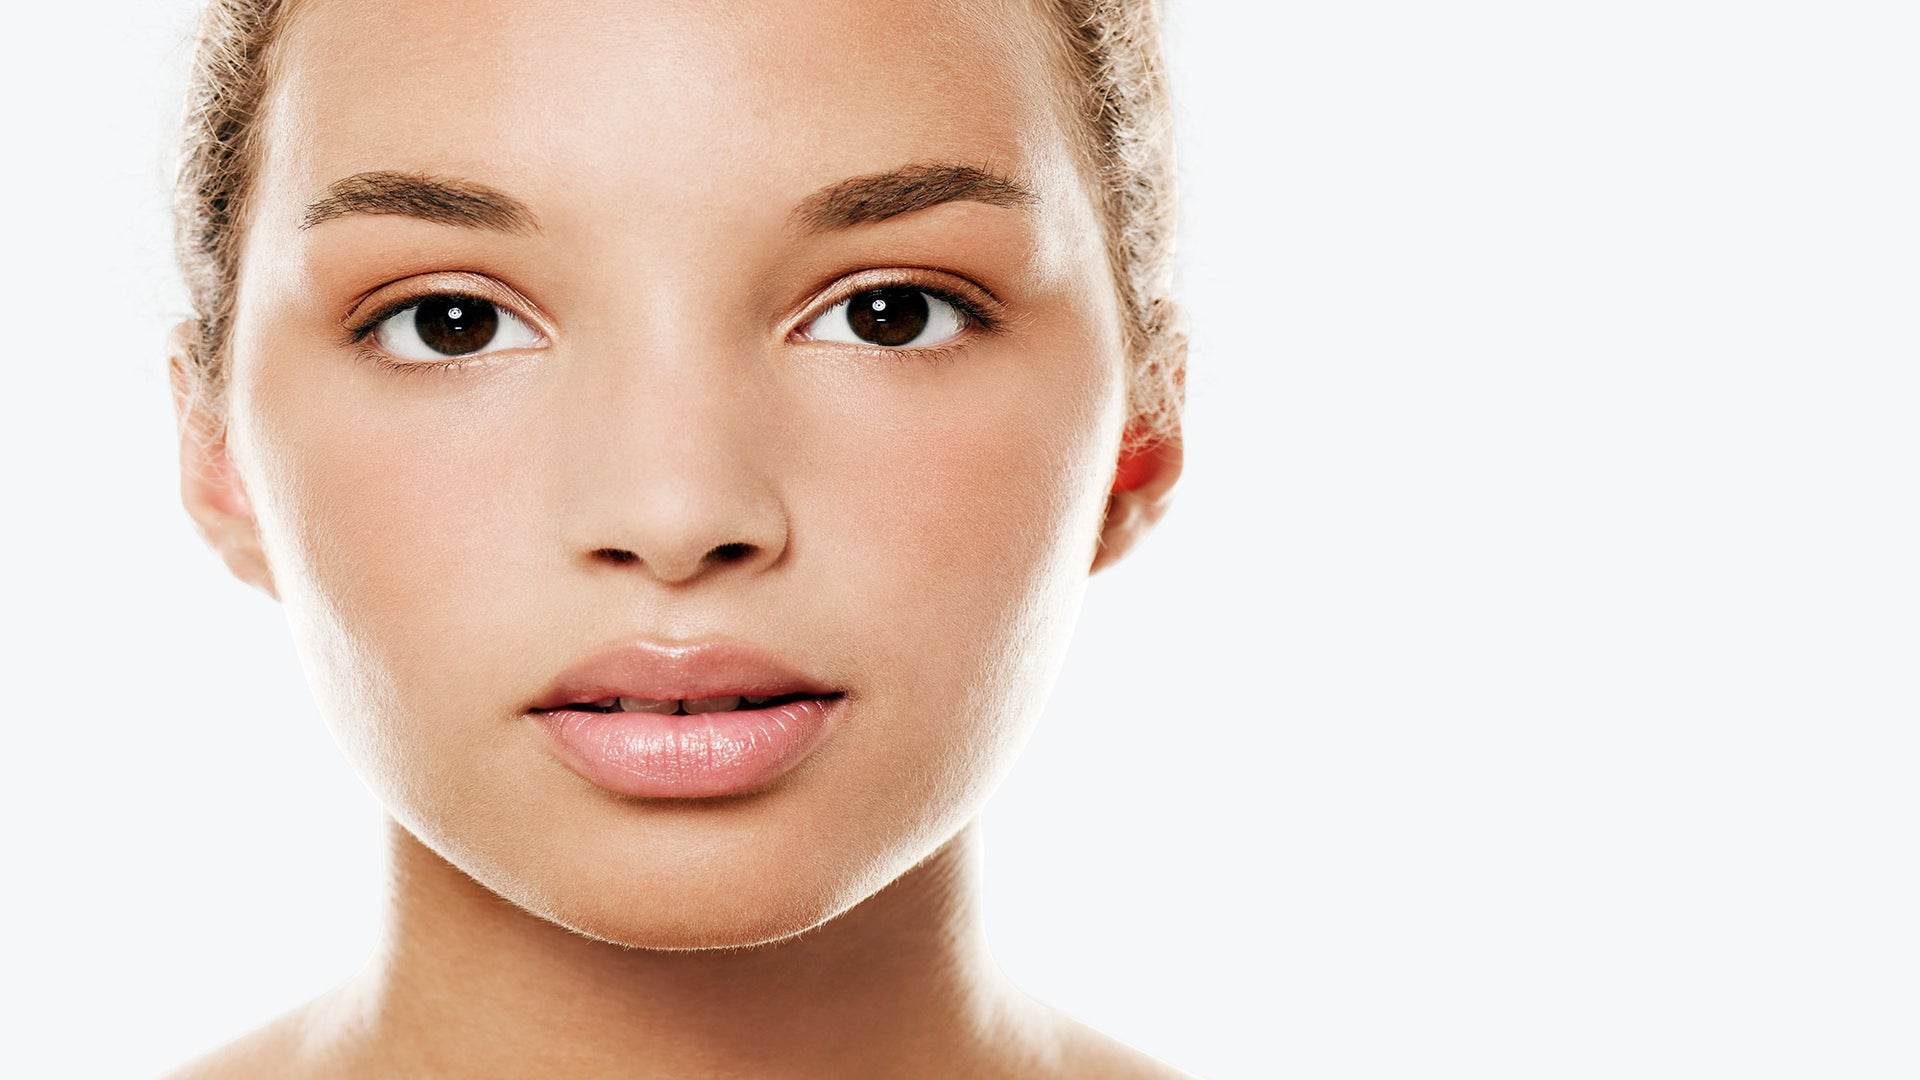 How To Take Care Of Your Skin After Turning The Big 3-0